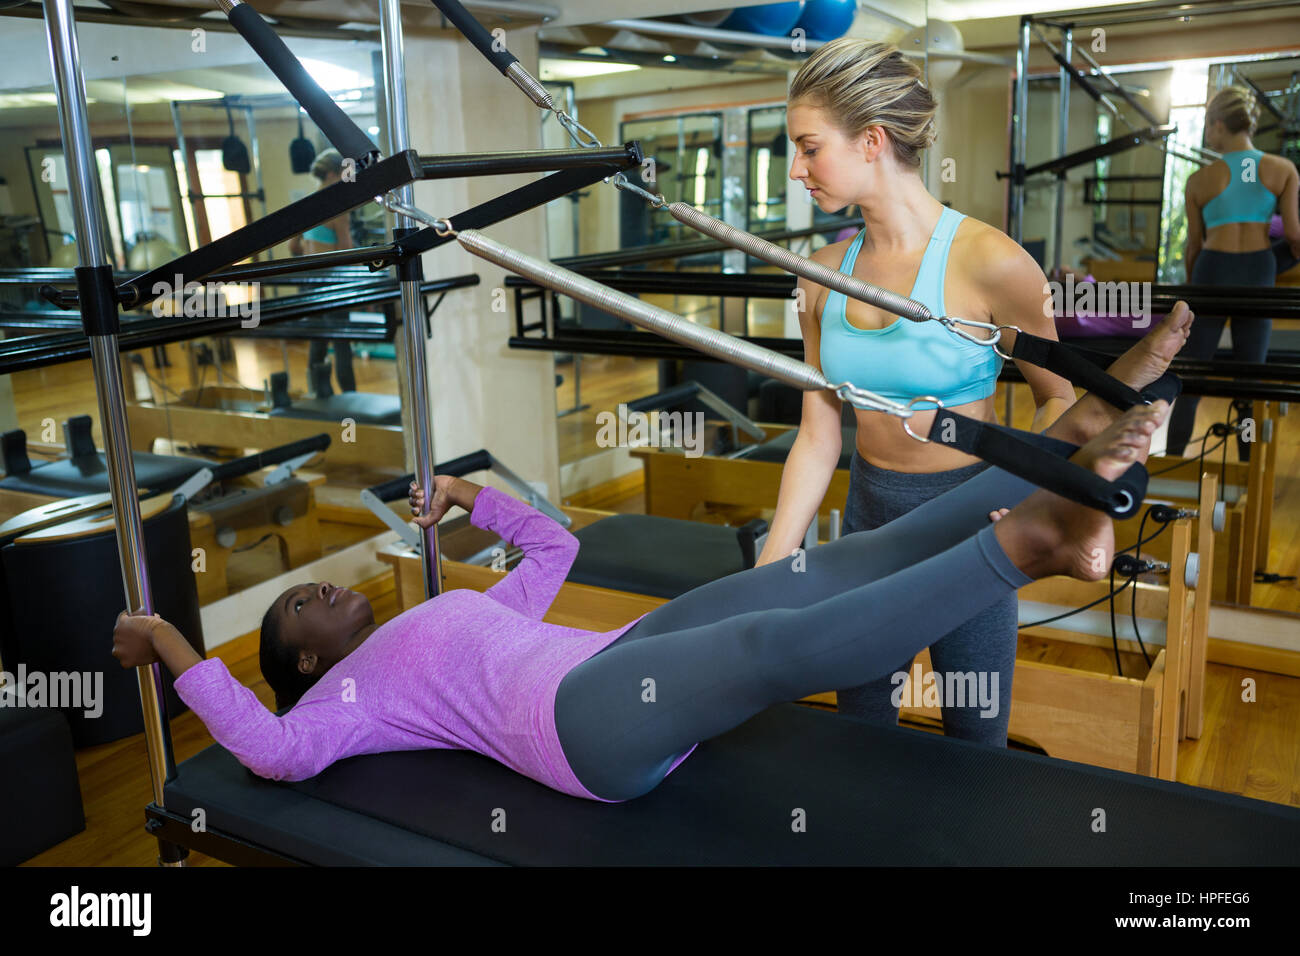 Trainer assisting woman with pilates on reformer in fitness studio - Stock Image